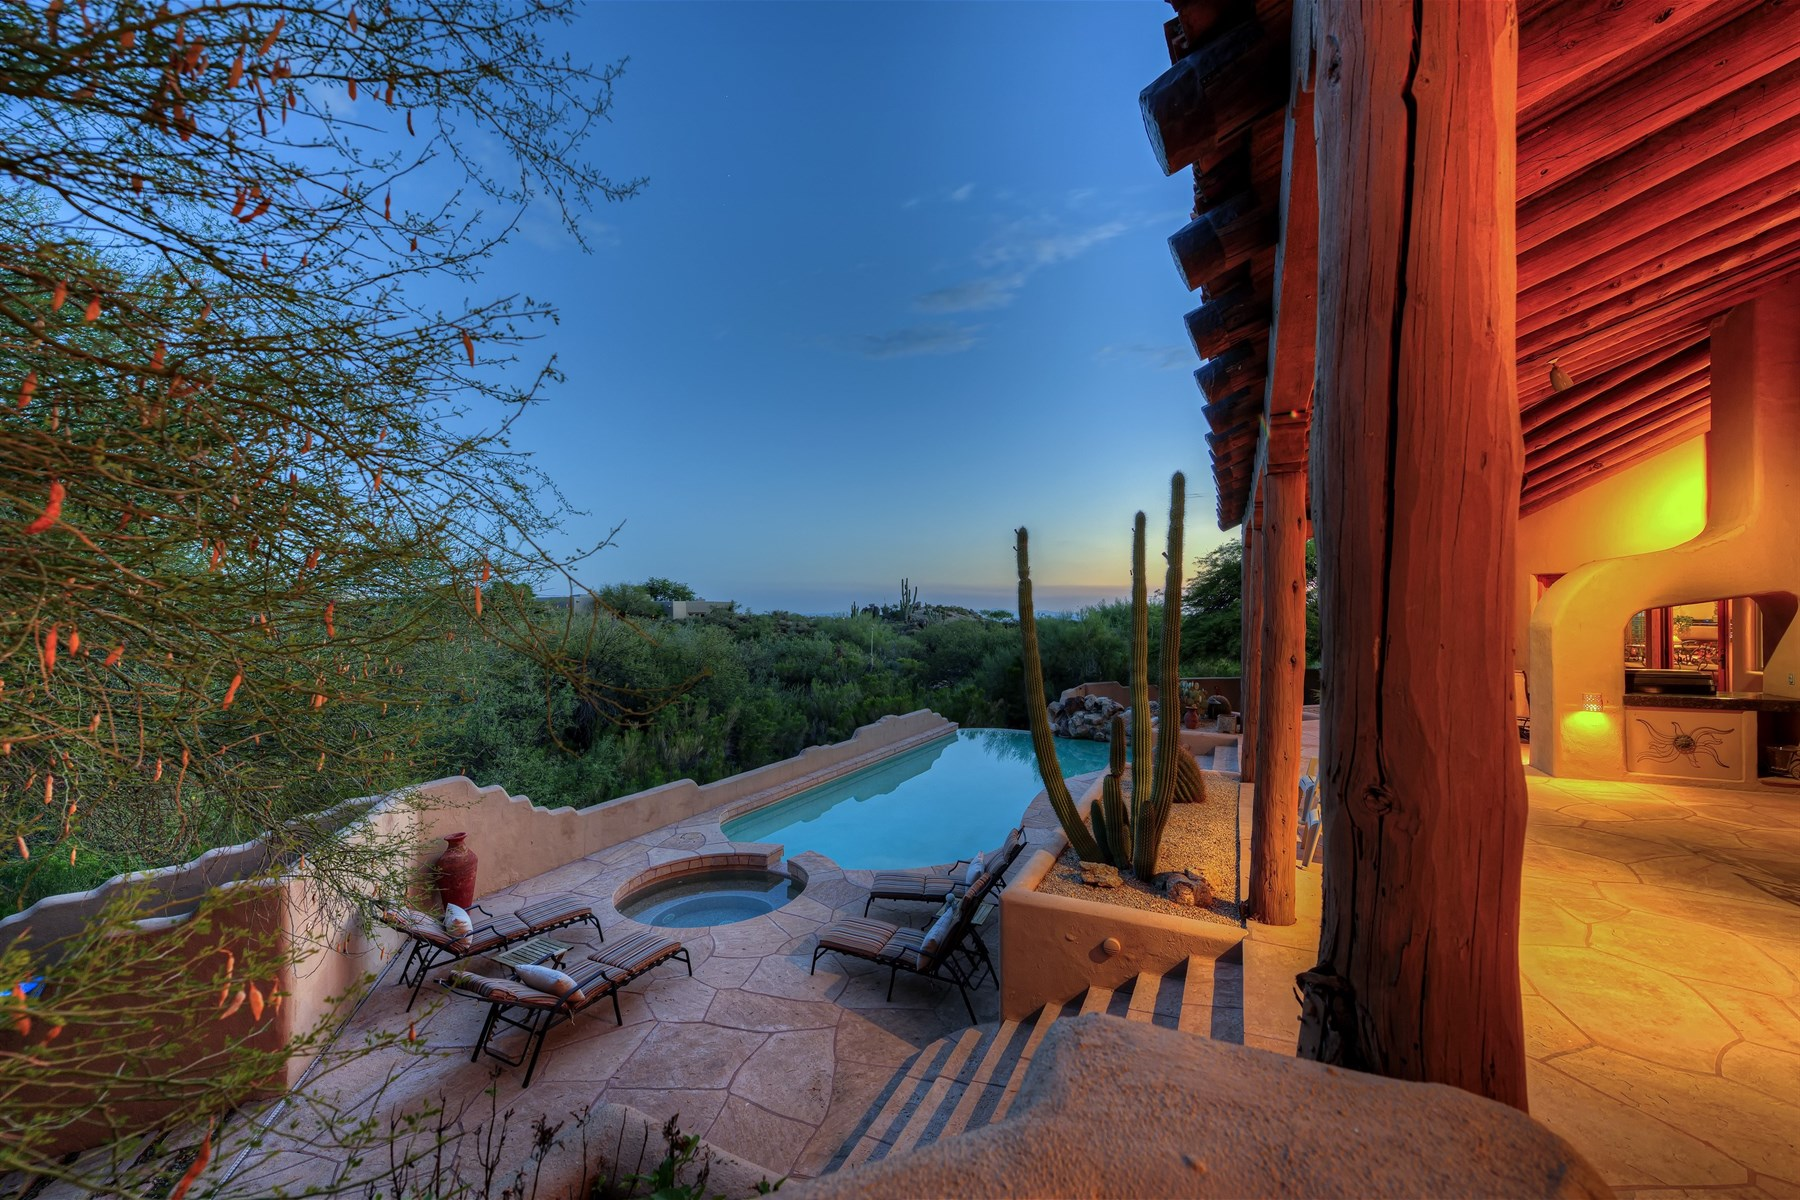 Single Family Home for Sale at True Santa Fe enriched home 41503 N 109th Pl Scottsdale, Arizona, 85262 United States